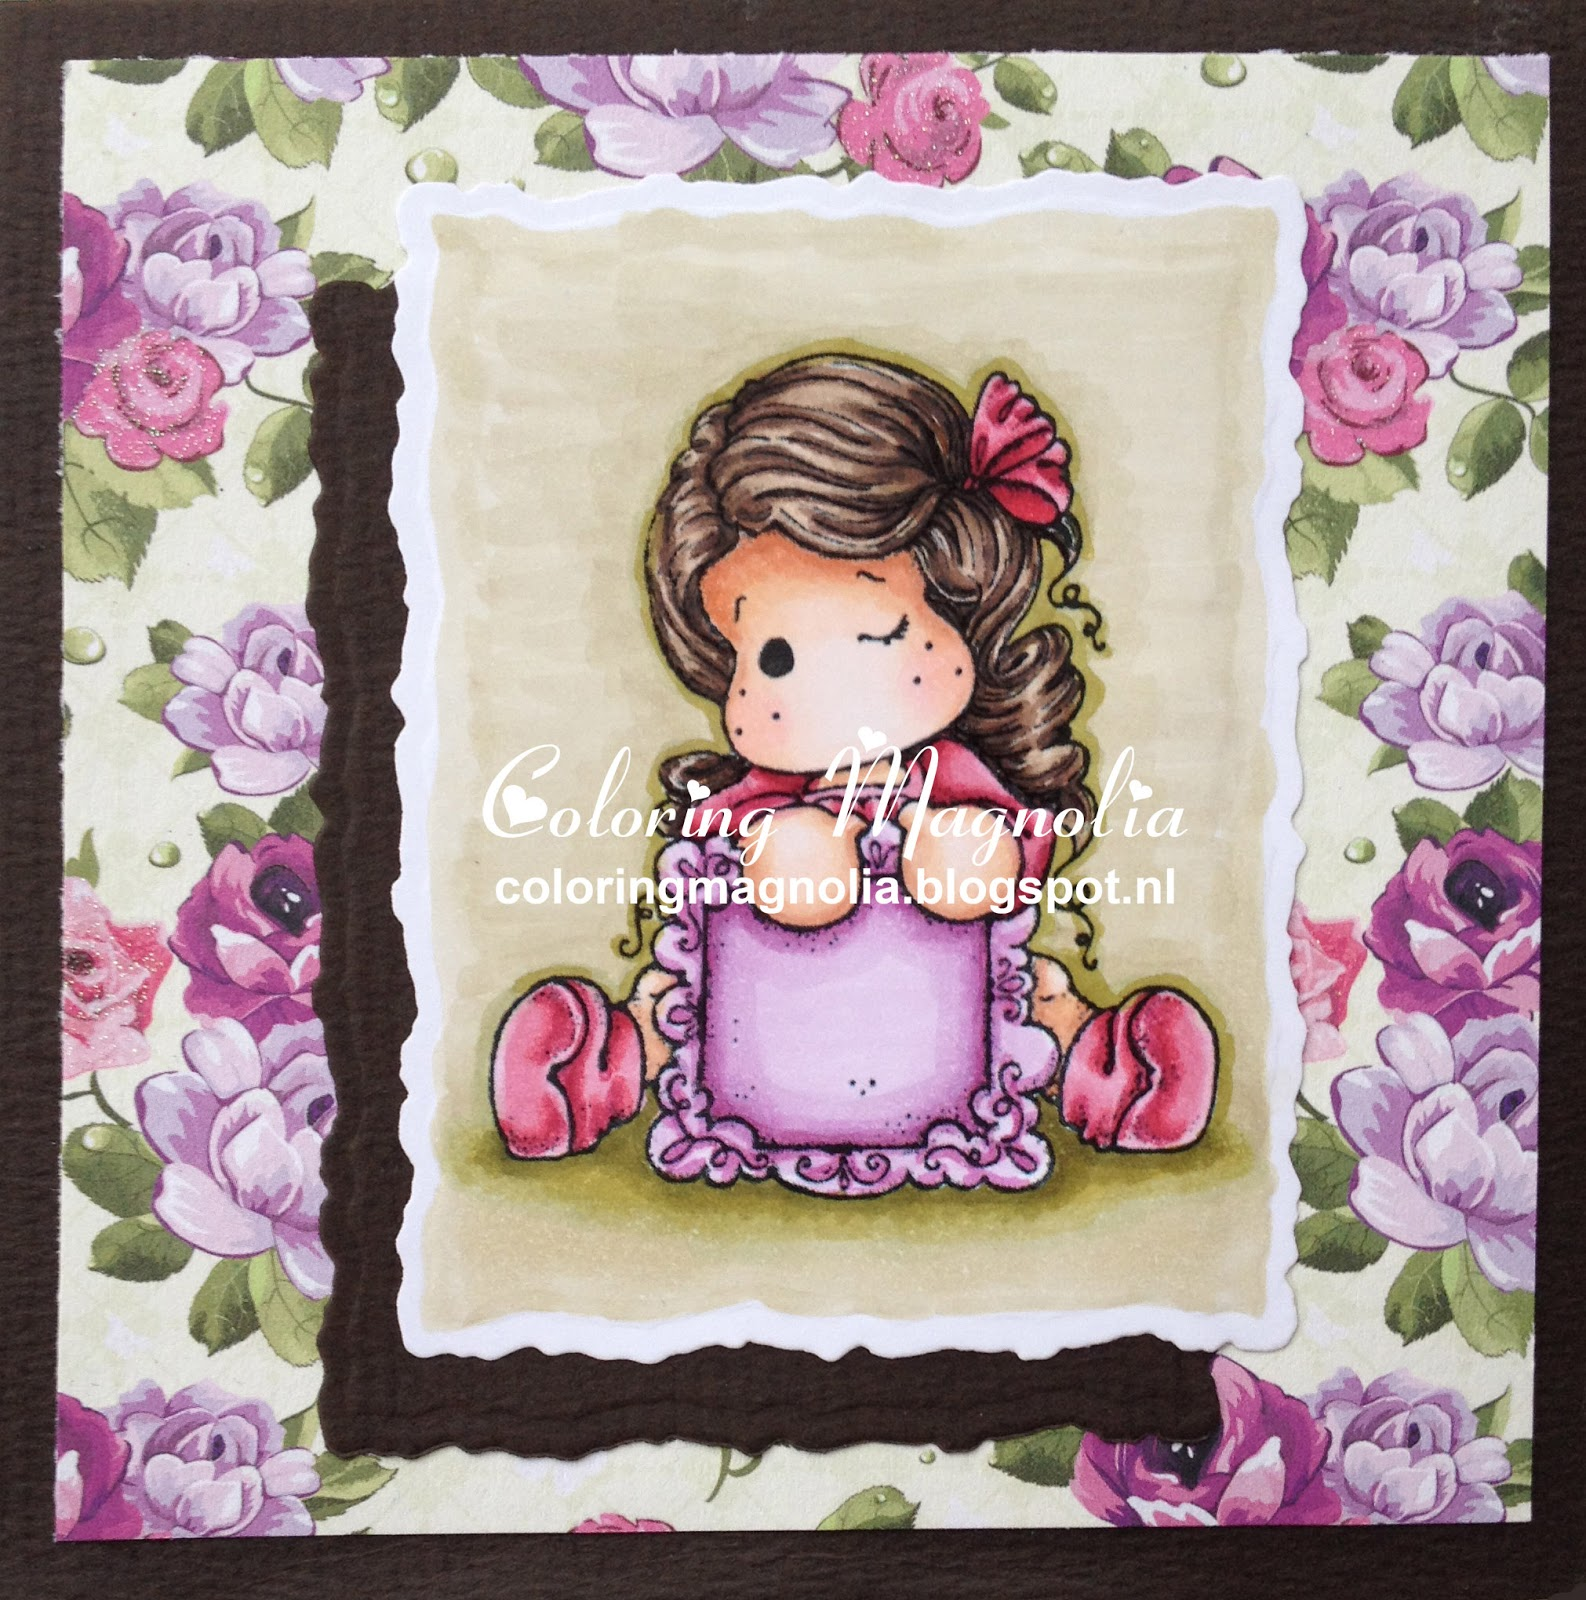 Coloring Magnolia Stamp 2014 Lost And Found Collection - Write a Message Tilda